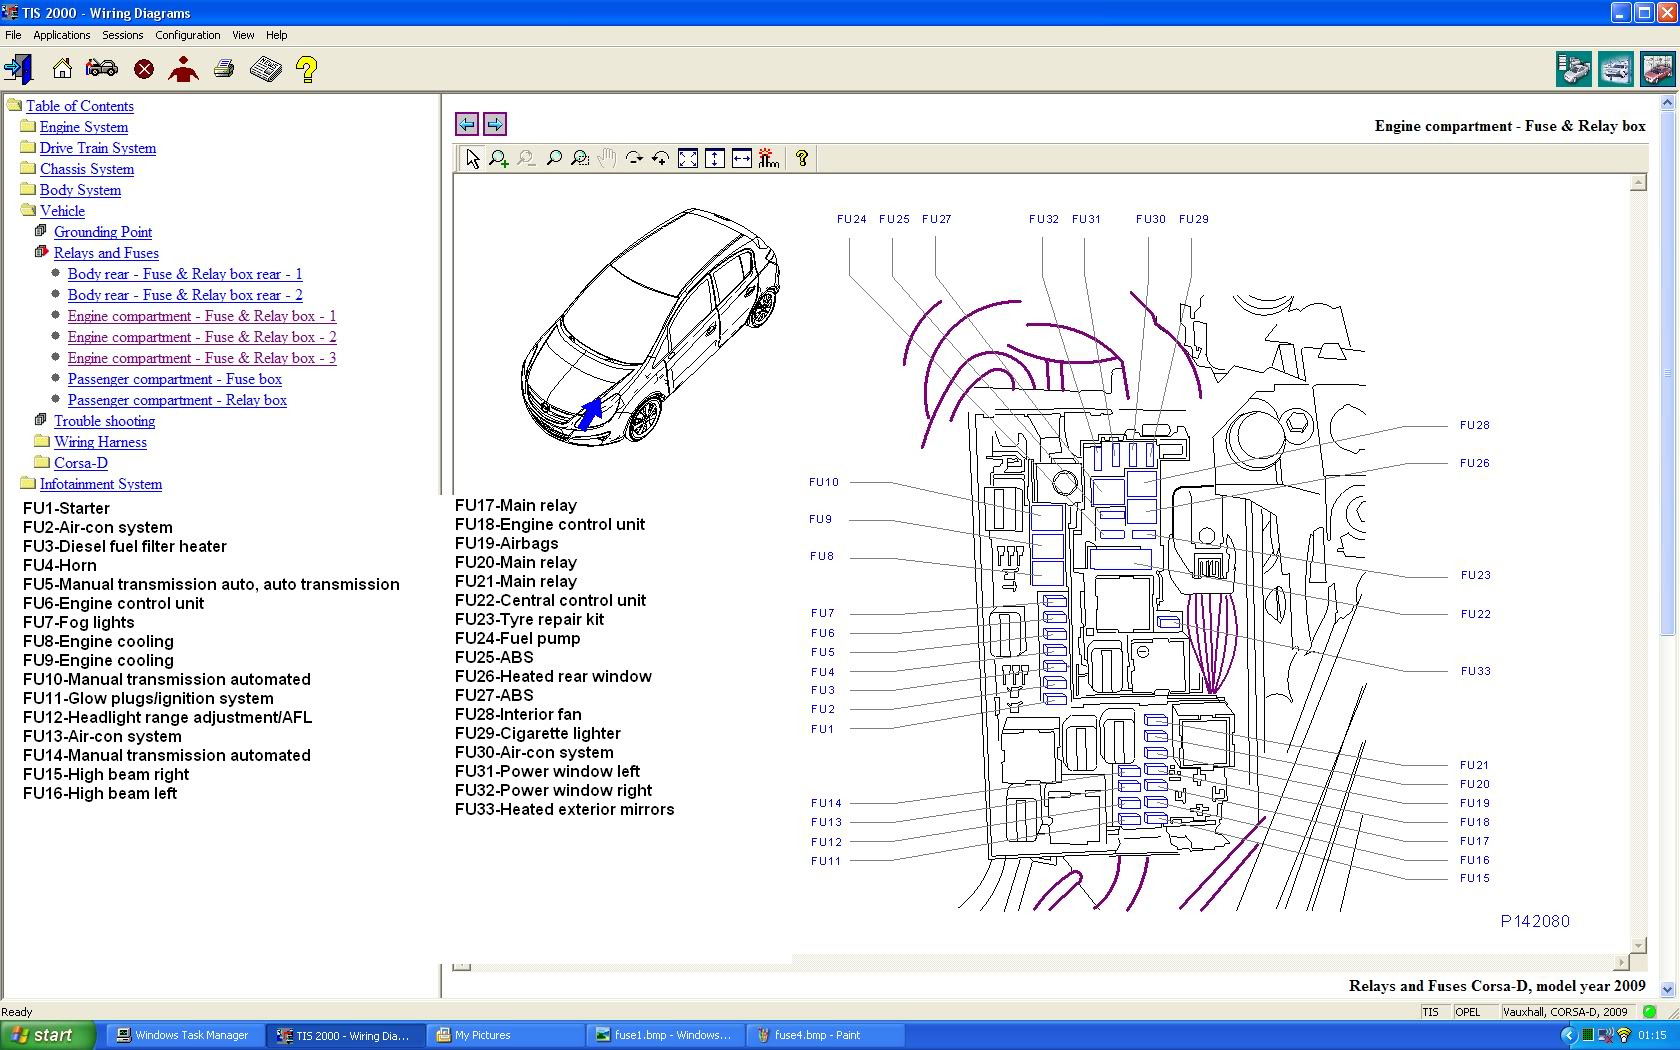 1995 F250 Fuse Diagram Auto Electrical Wiring 1987 Porsche Carrera Fornt Box Corsa C Layout 23 Images